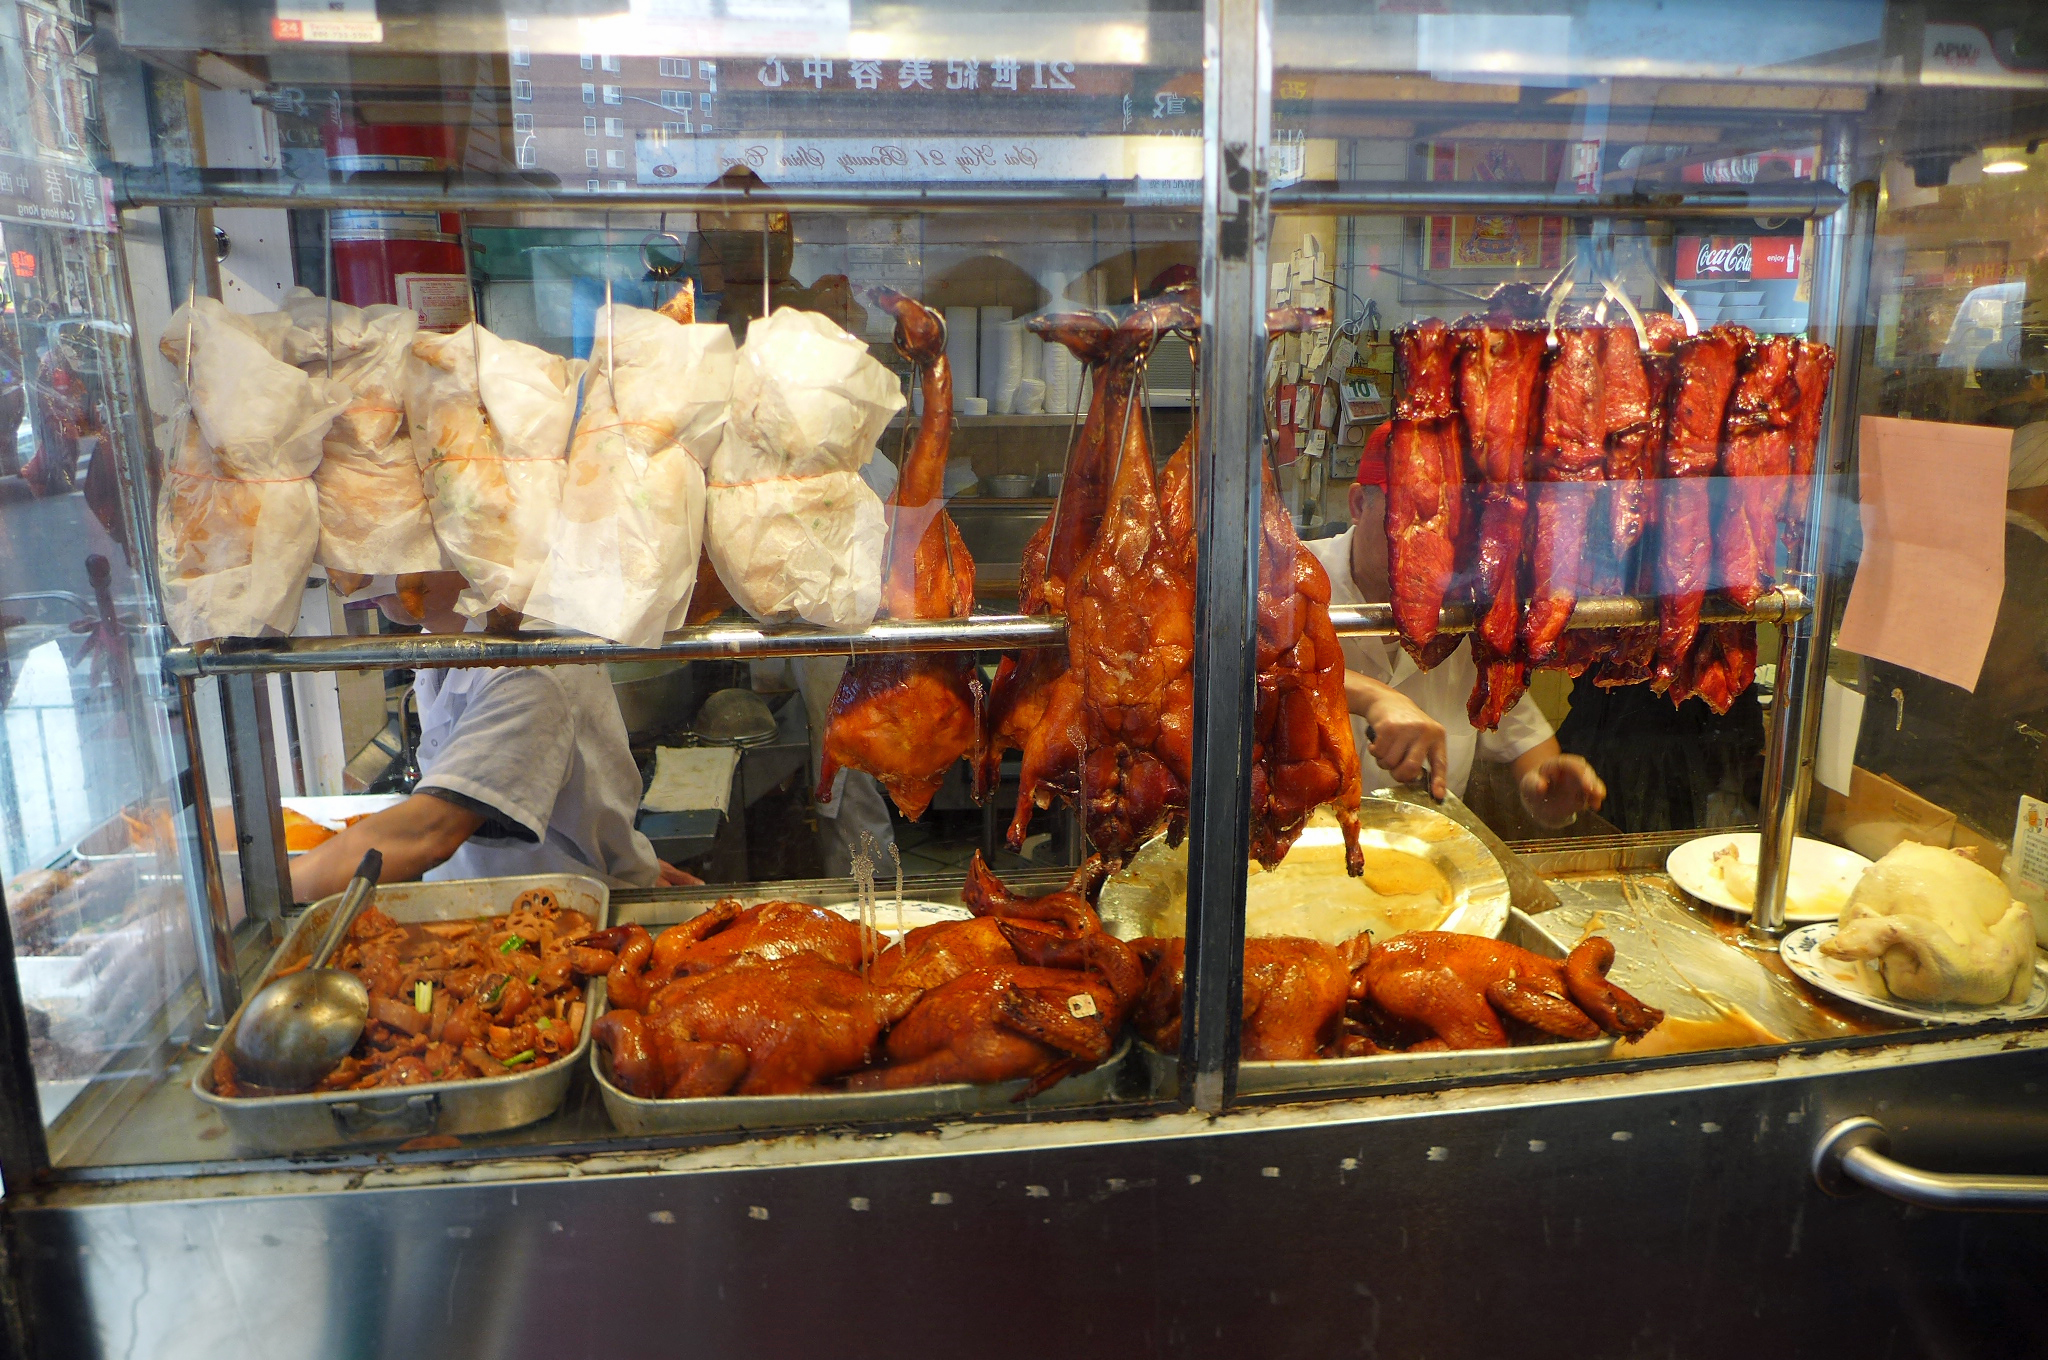 The collection of preserved meats, poultry, and seafood in the window is enough to draw you in.